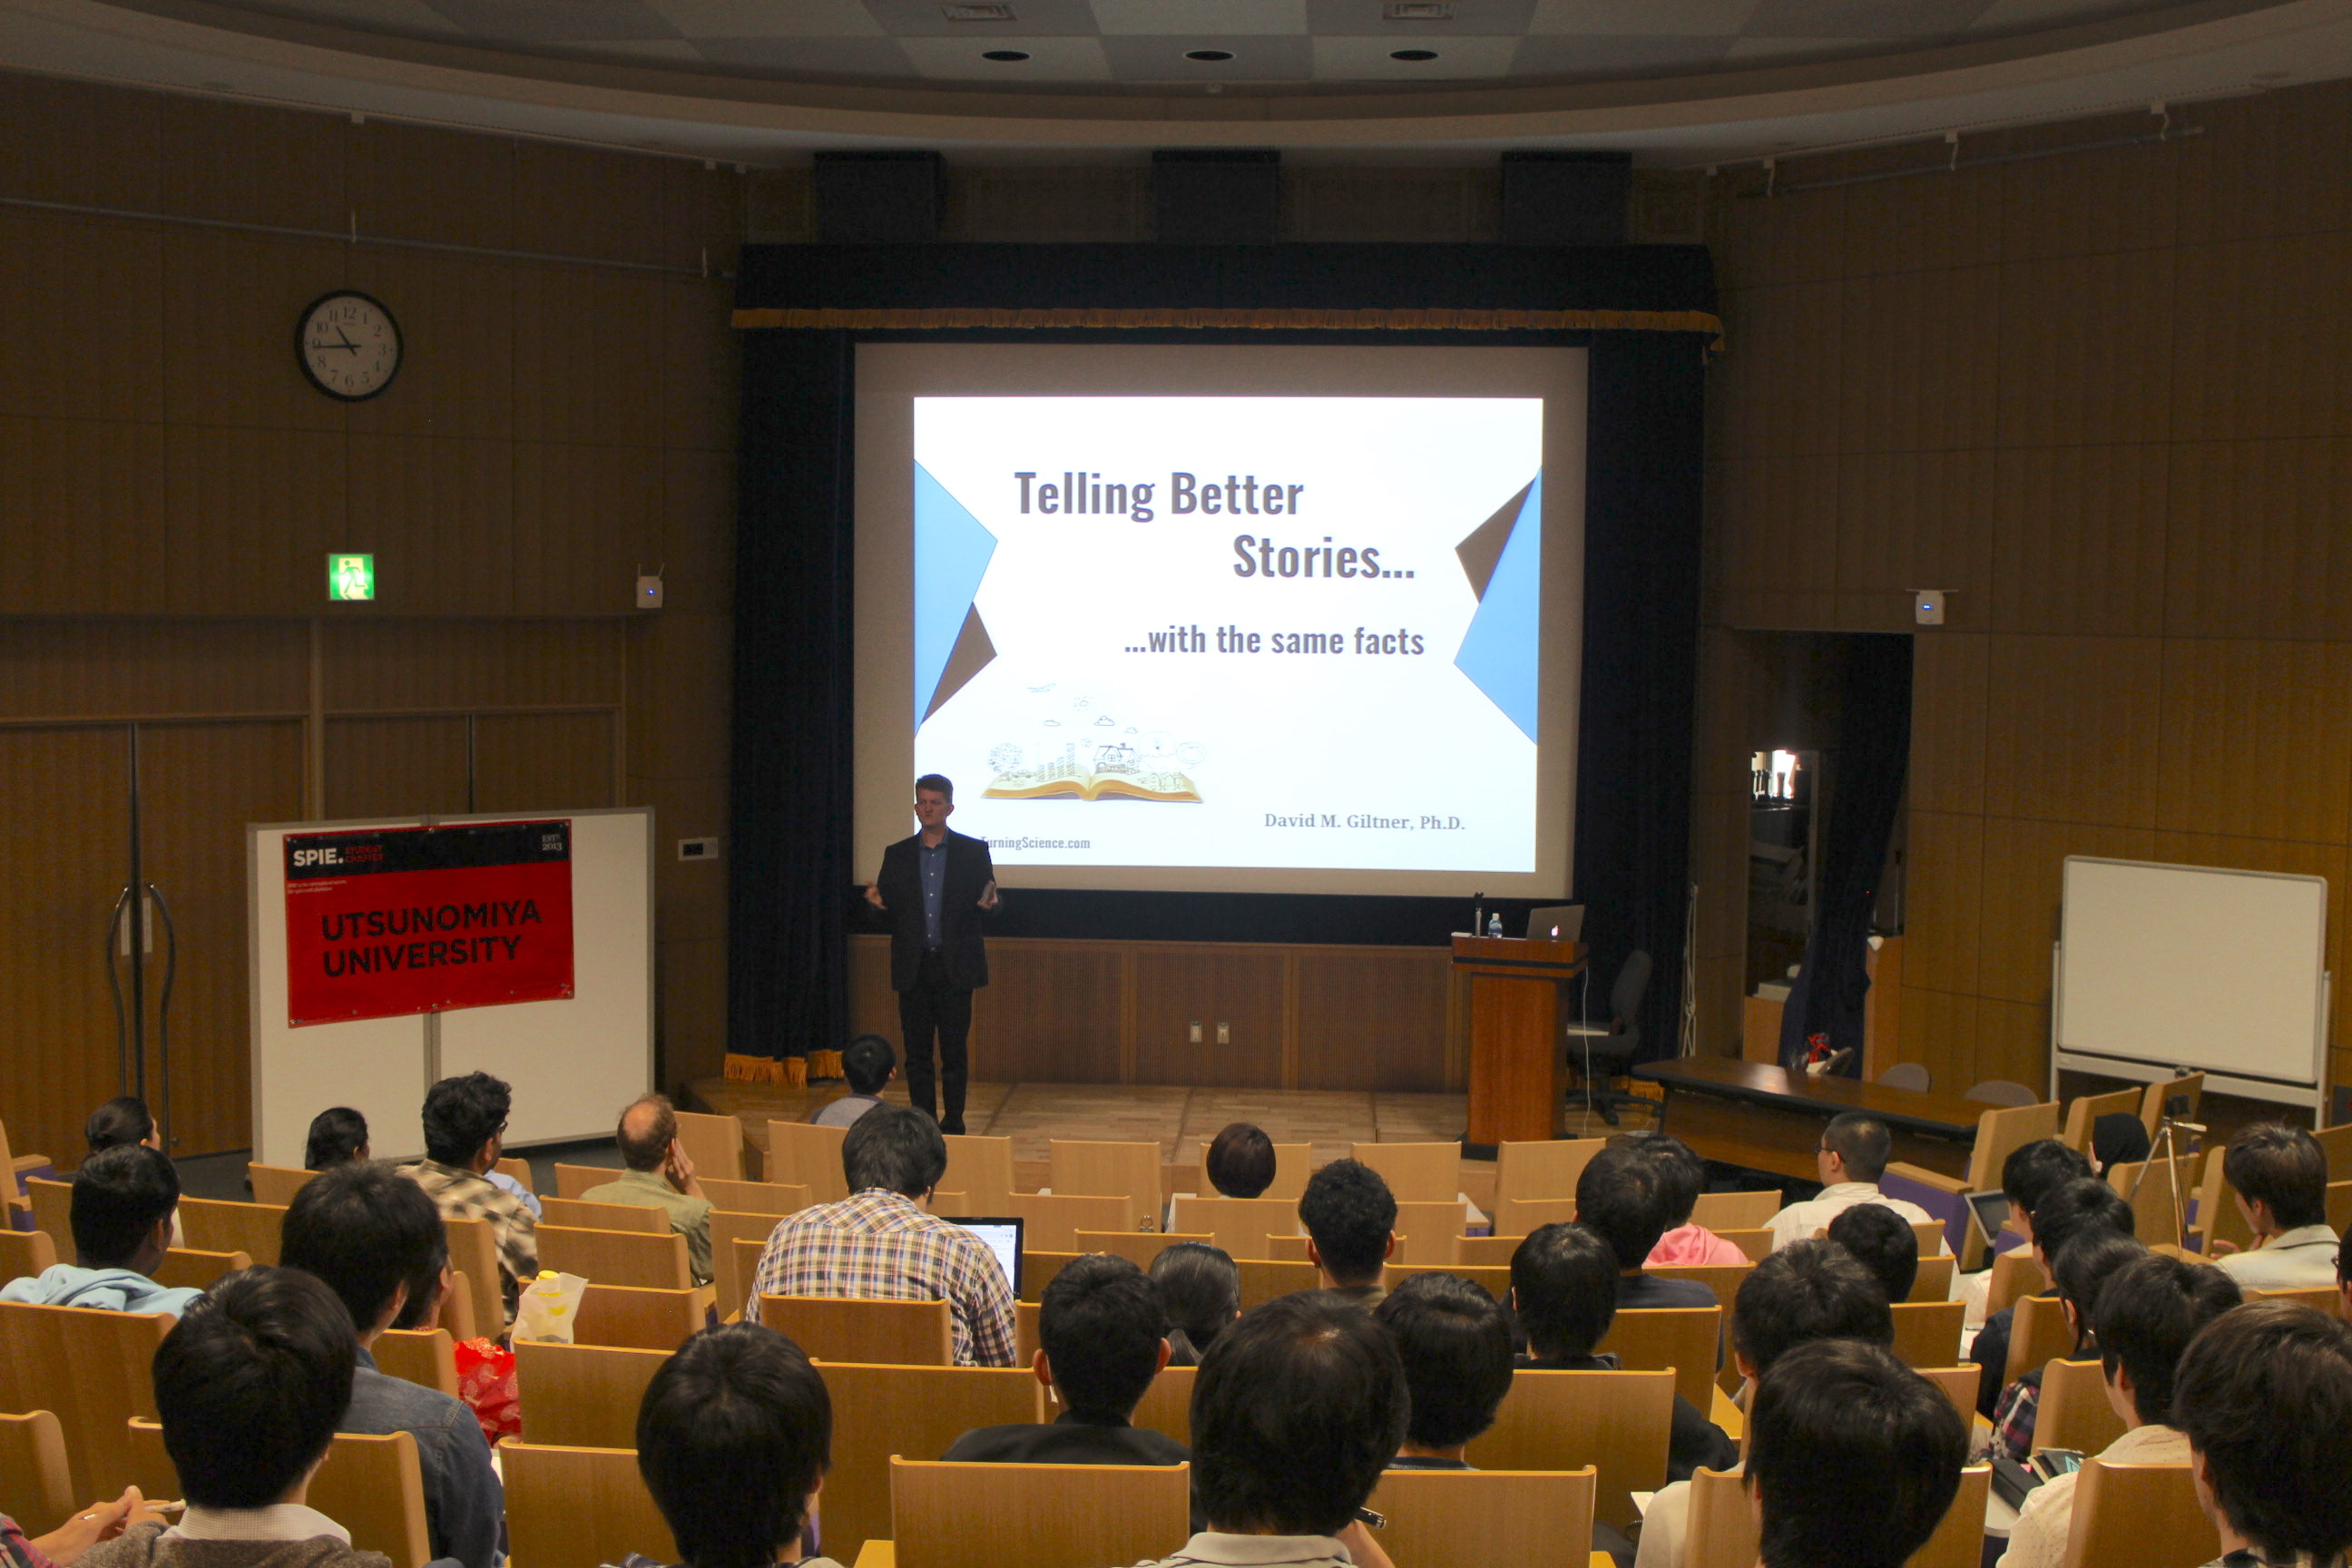 David Giltner speaking at Utsunomiya University